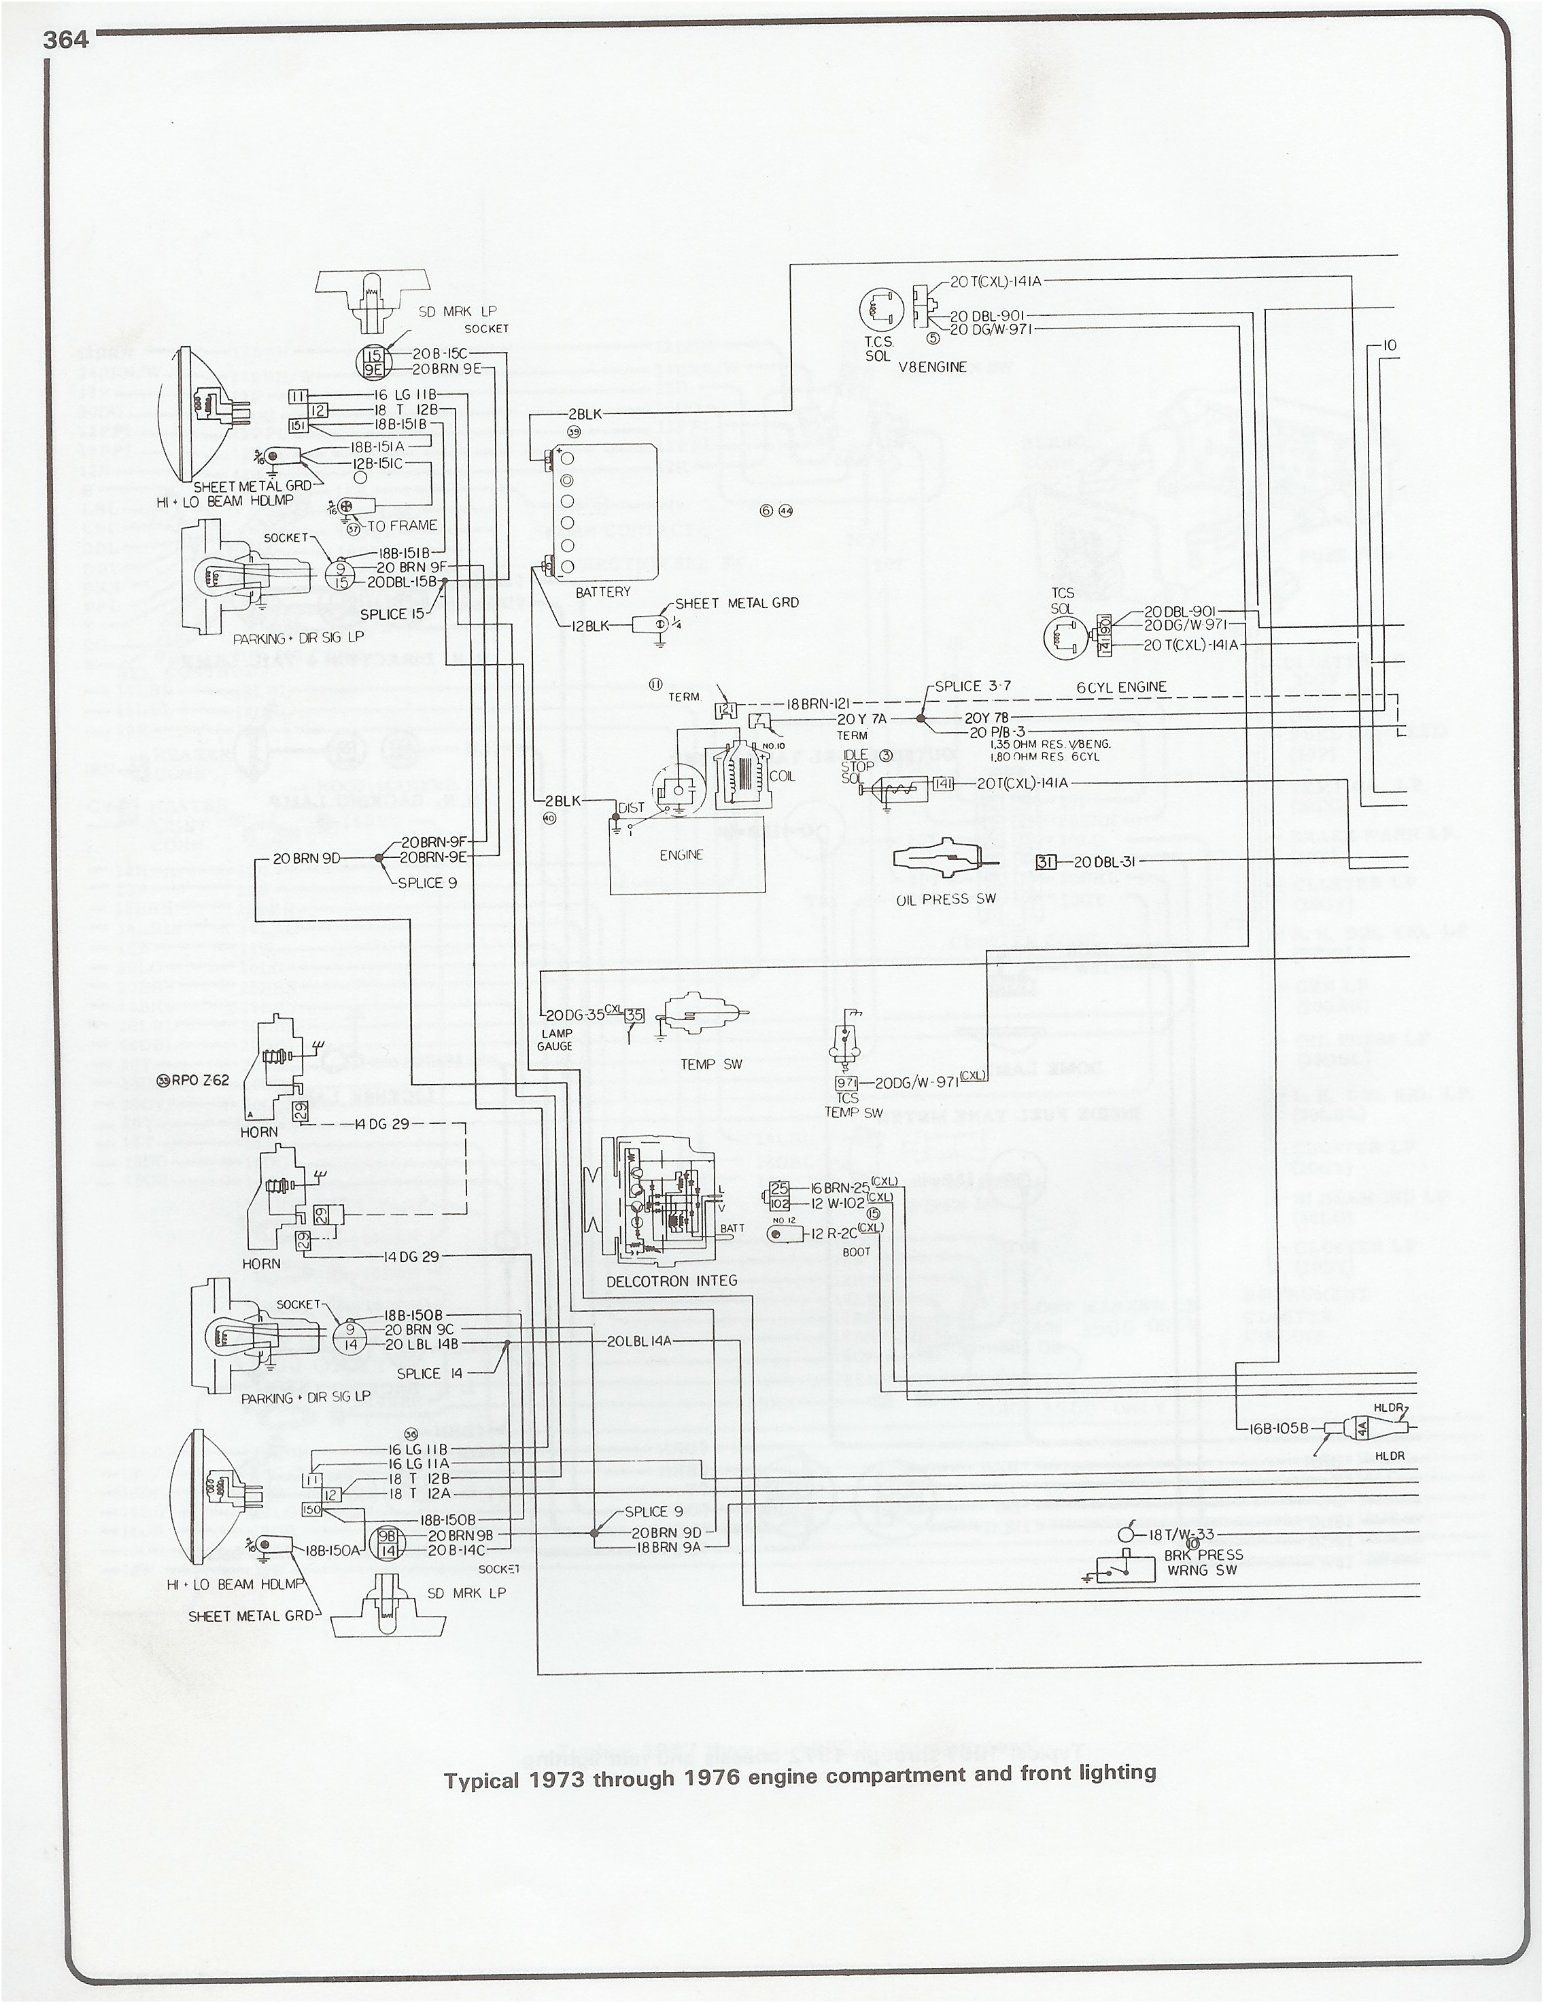 b46c0c014ab7ae7becc2b916945faf15 wiring diagram 1973 1976 chevy pickup chevy wiring diagram 1976 camaro wiring diagram at n-0.co